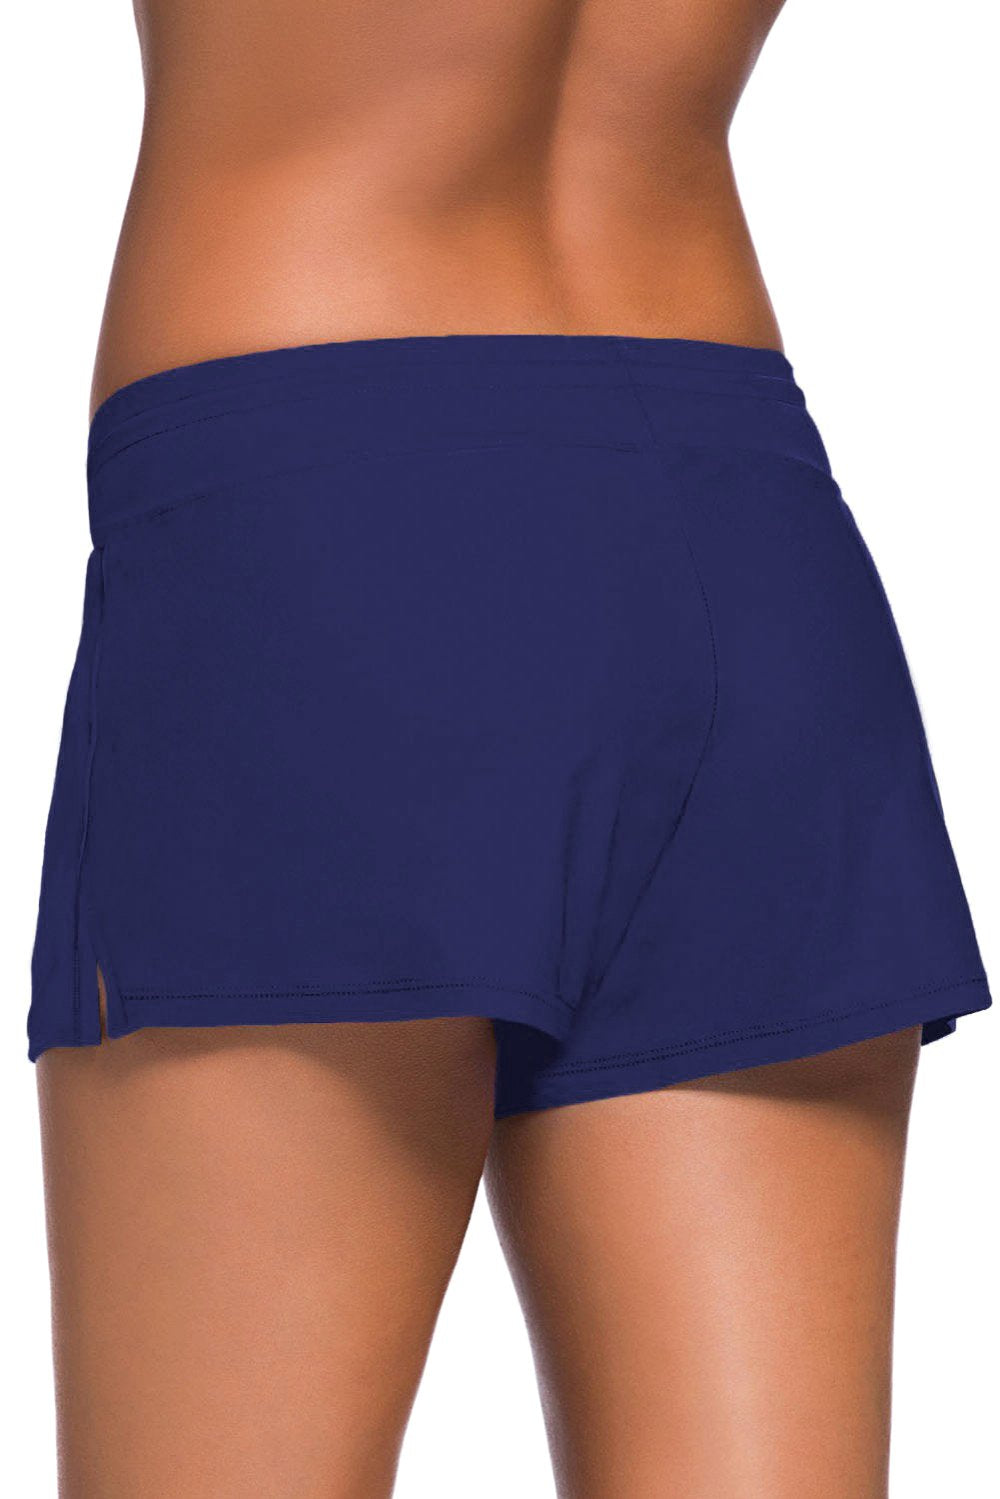 Fitness Shorts - Available in PLUS SIZE - Bak2Bay6Store